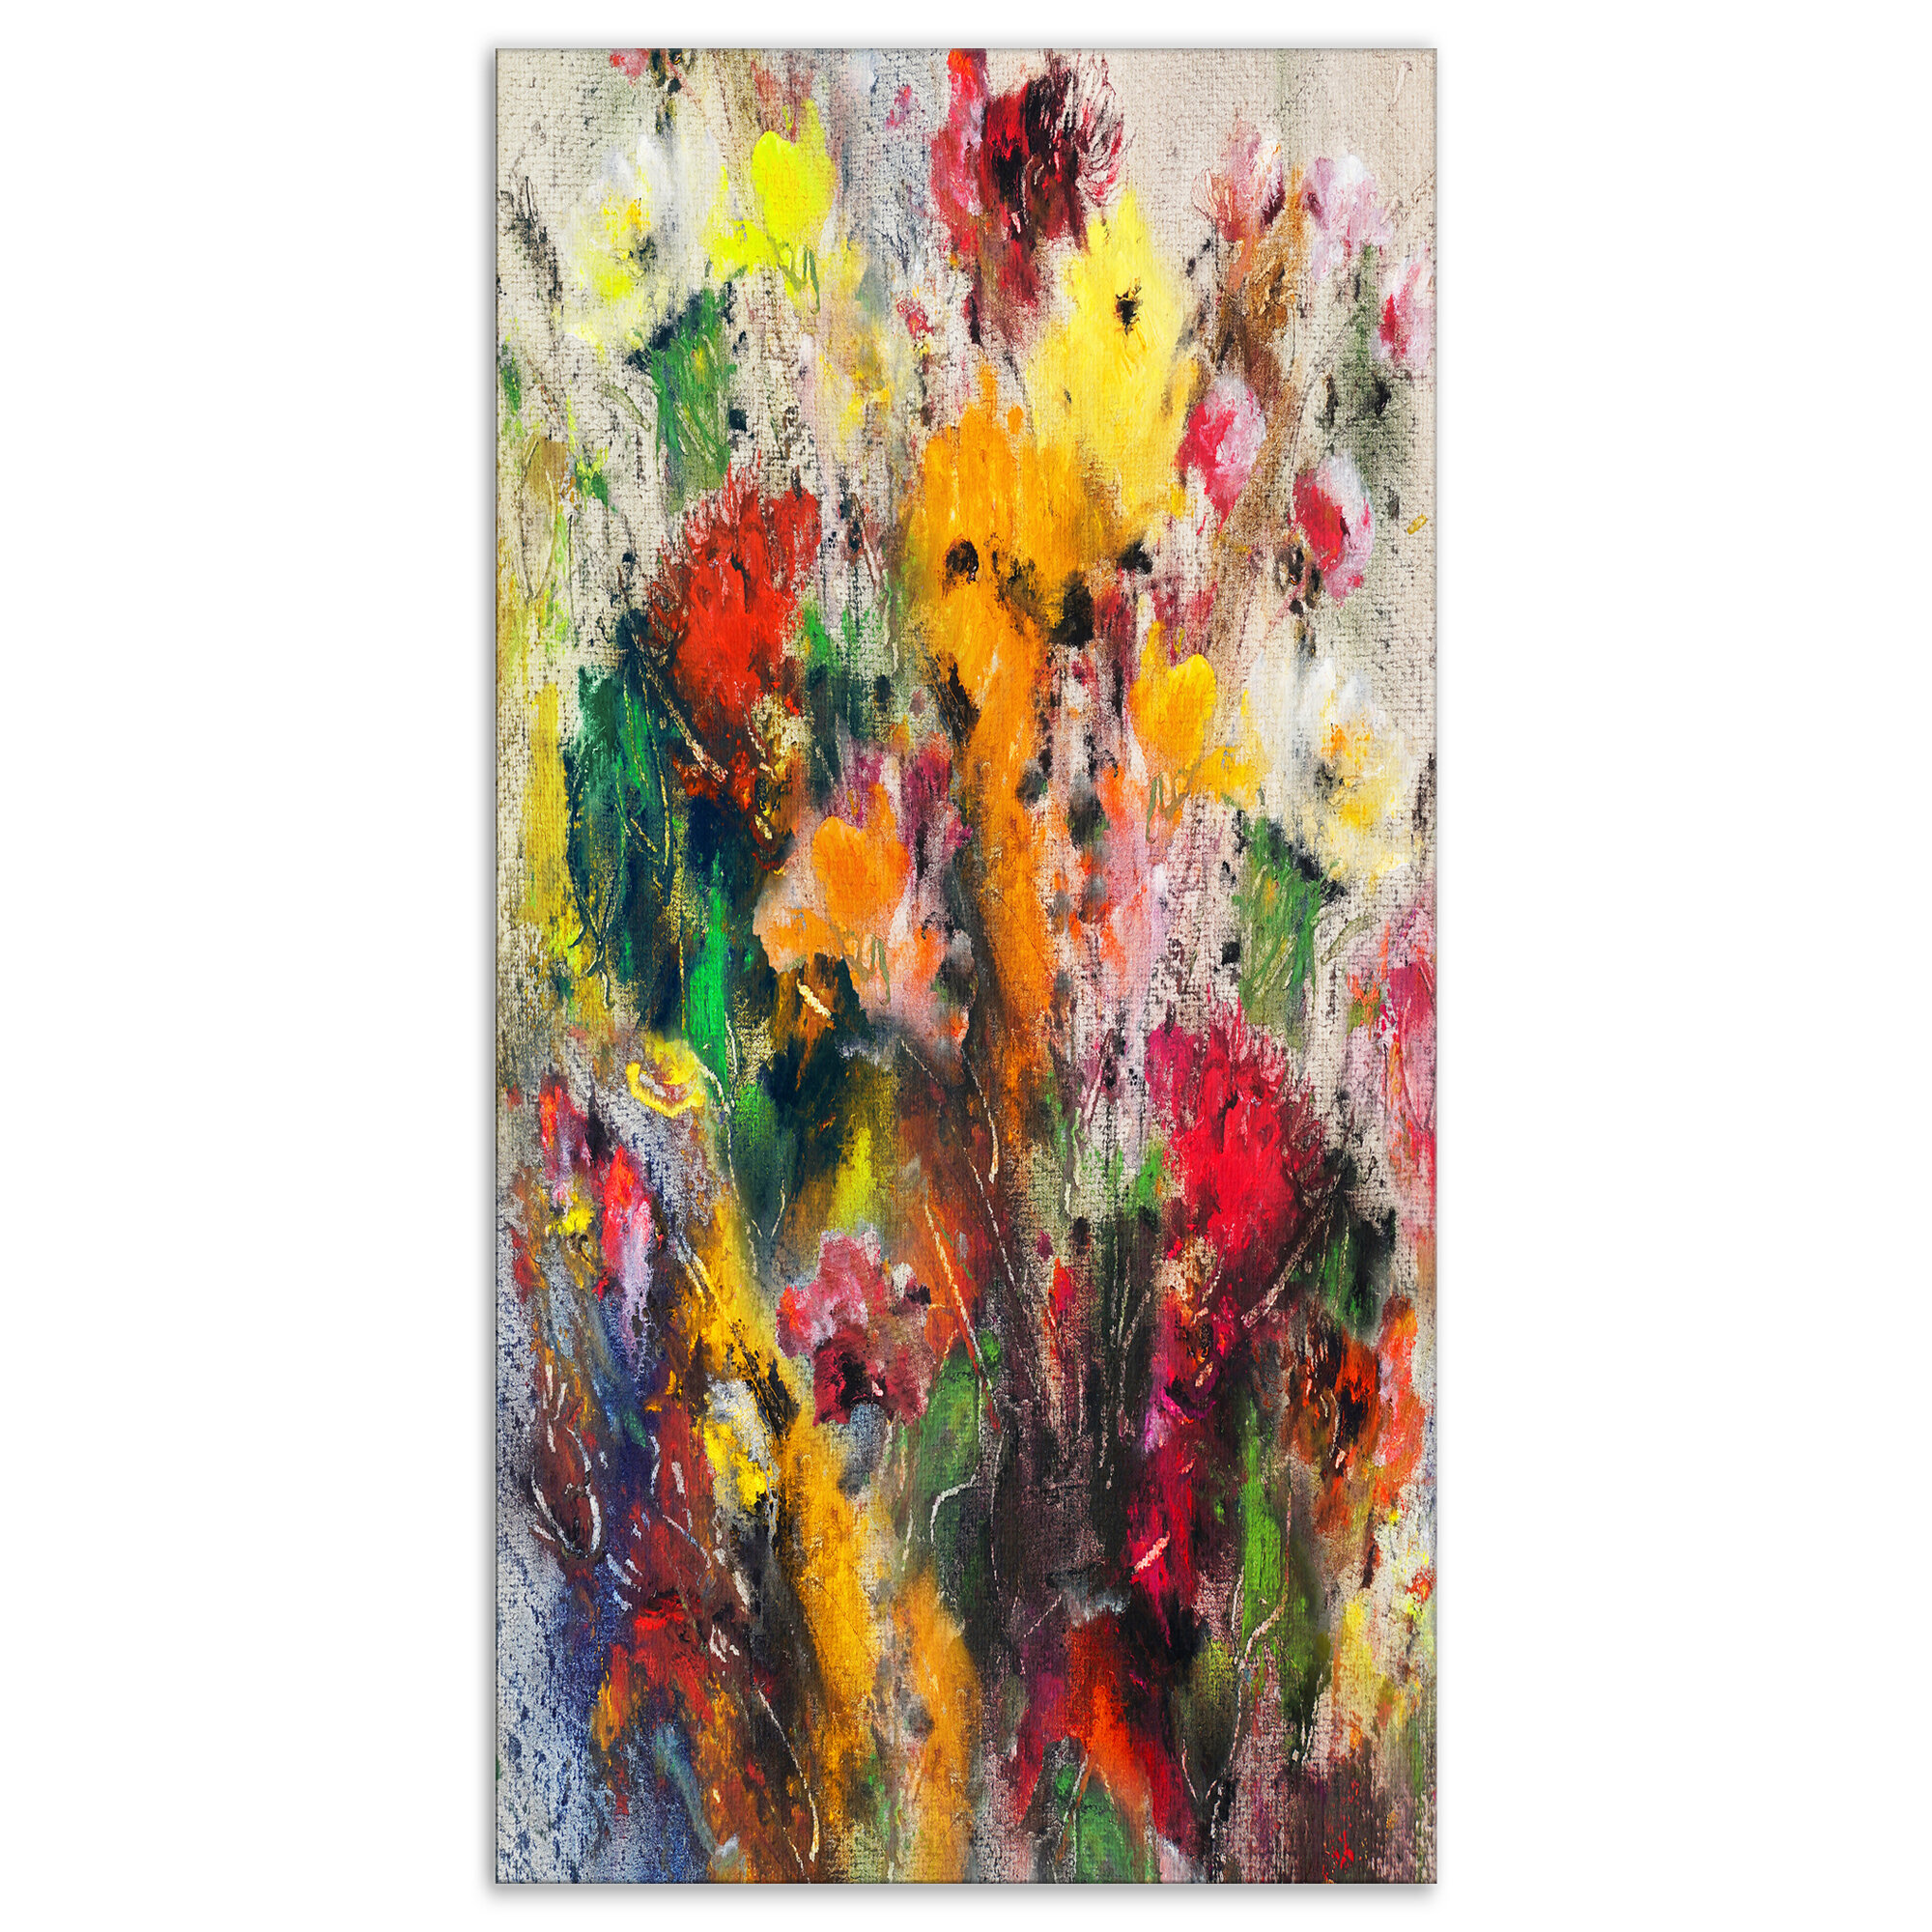 Floral Flowers Abstract Painting Oil Painting Print On Wrapped Canvas